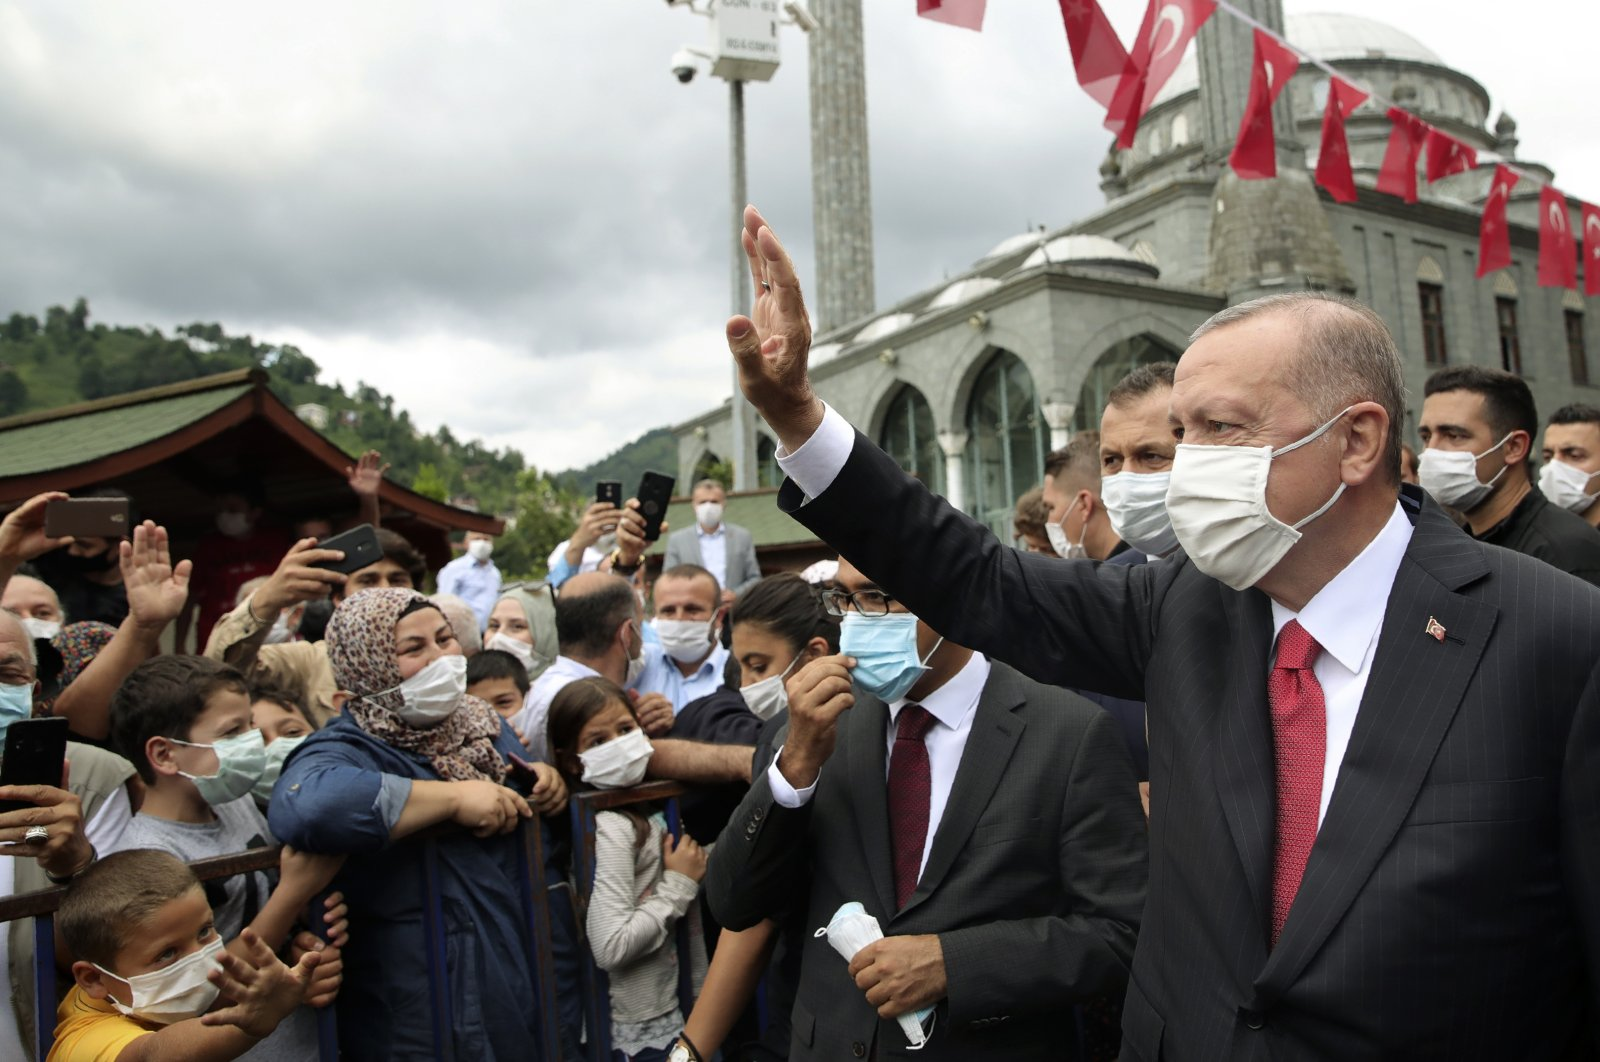 President Recep Tayyip Erdoğan wearing a face mask, as a precaution against the coronavirus, waves at his supporters in the Black Sea city of Rize, northern Turkey, Aug. 15, 2020. (AP Photo)